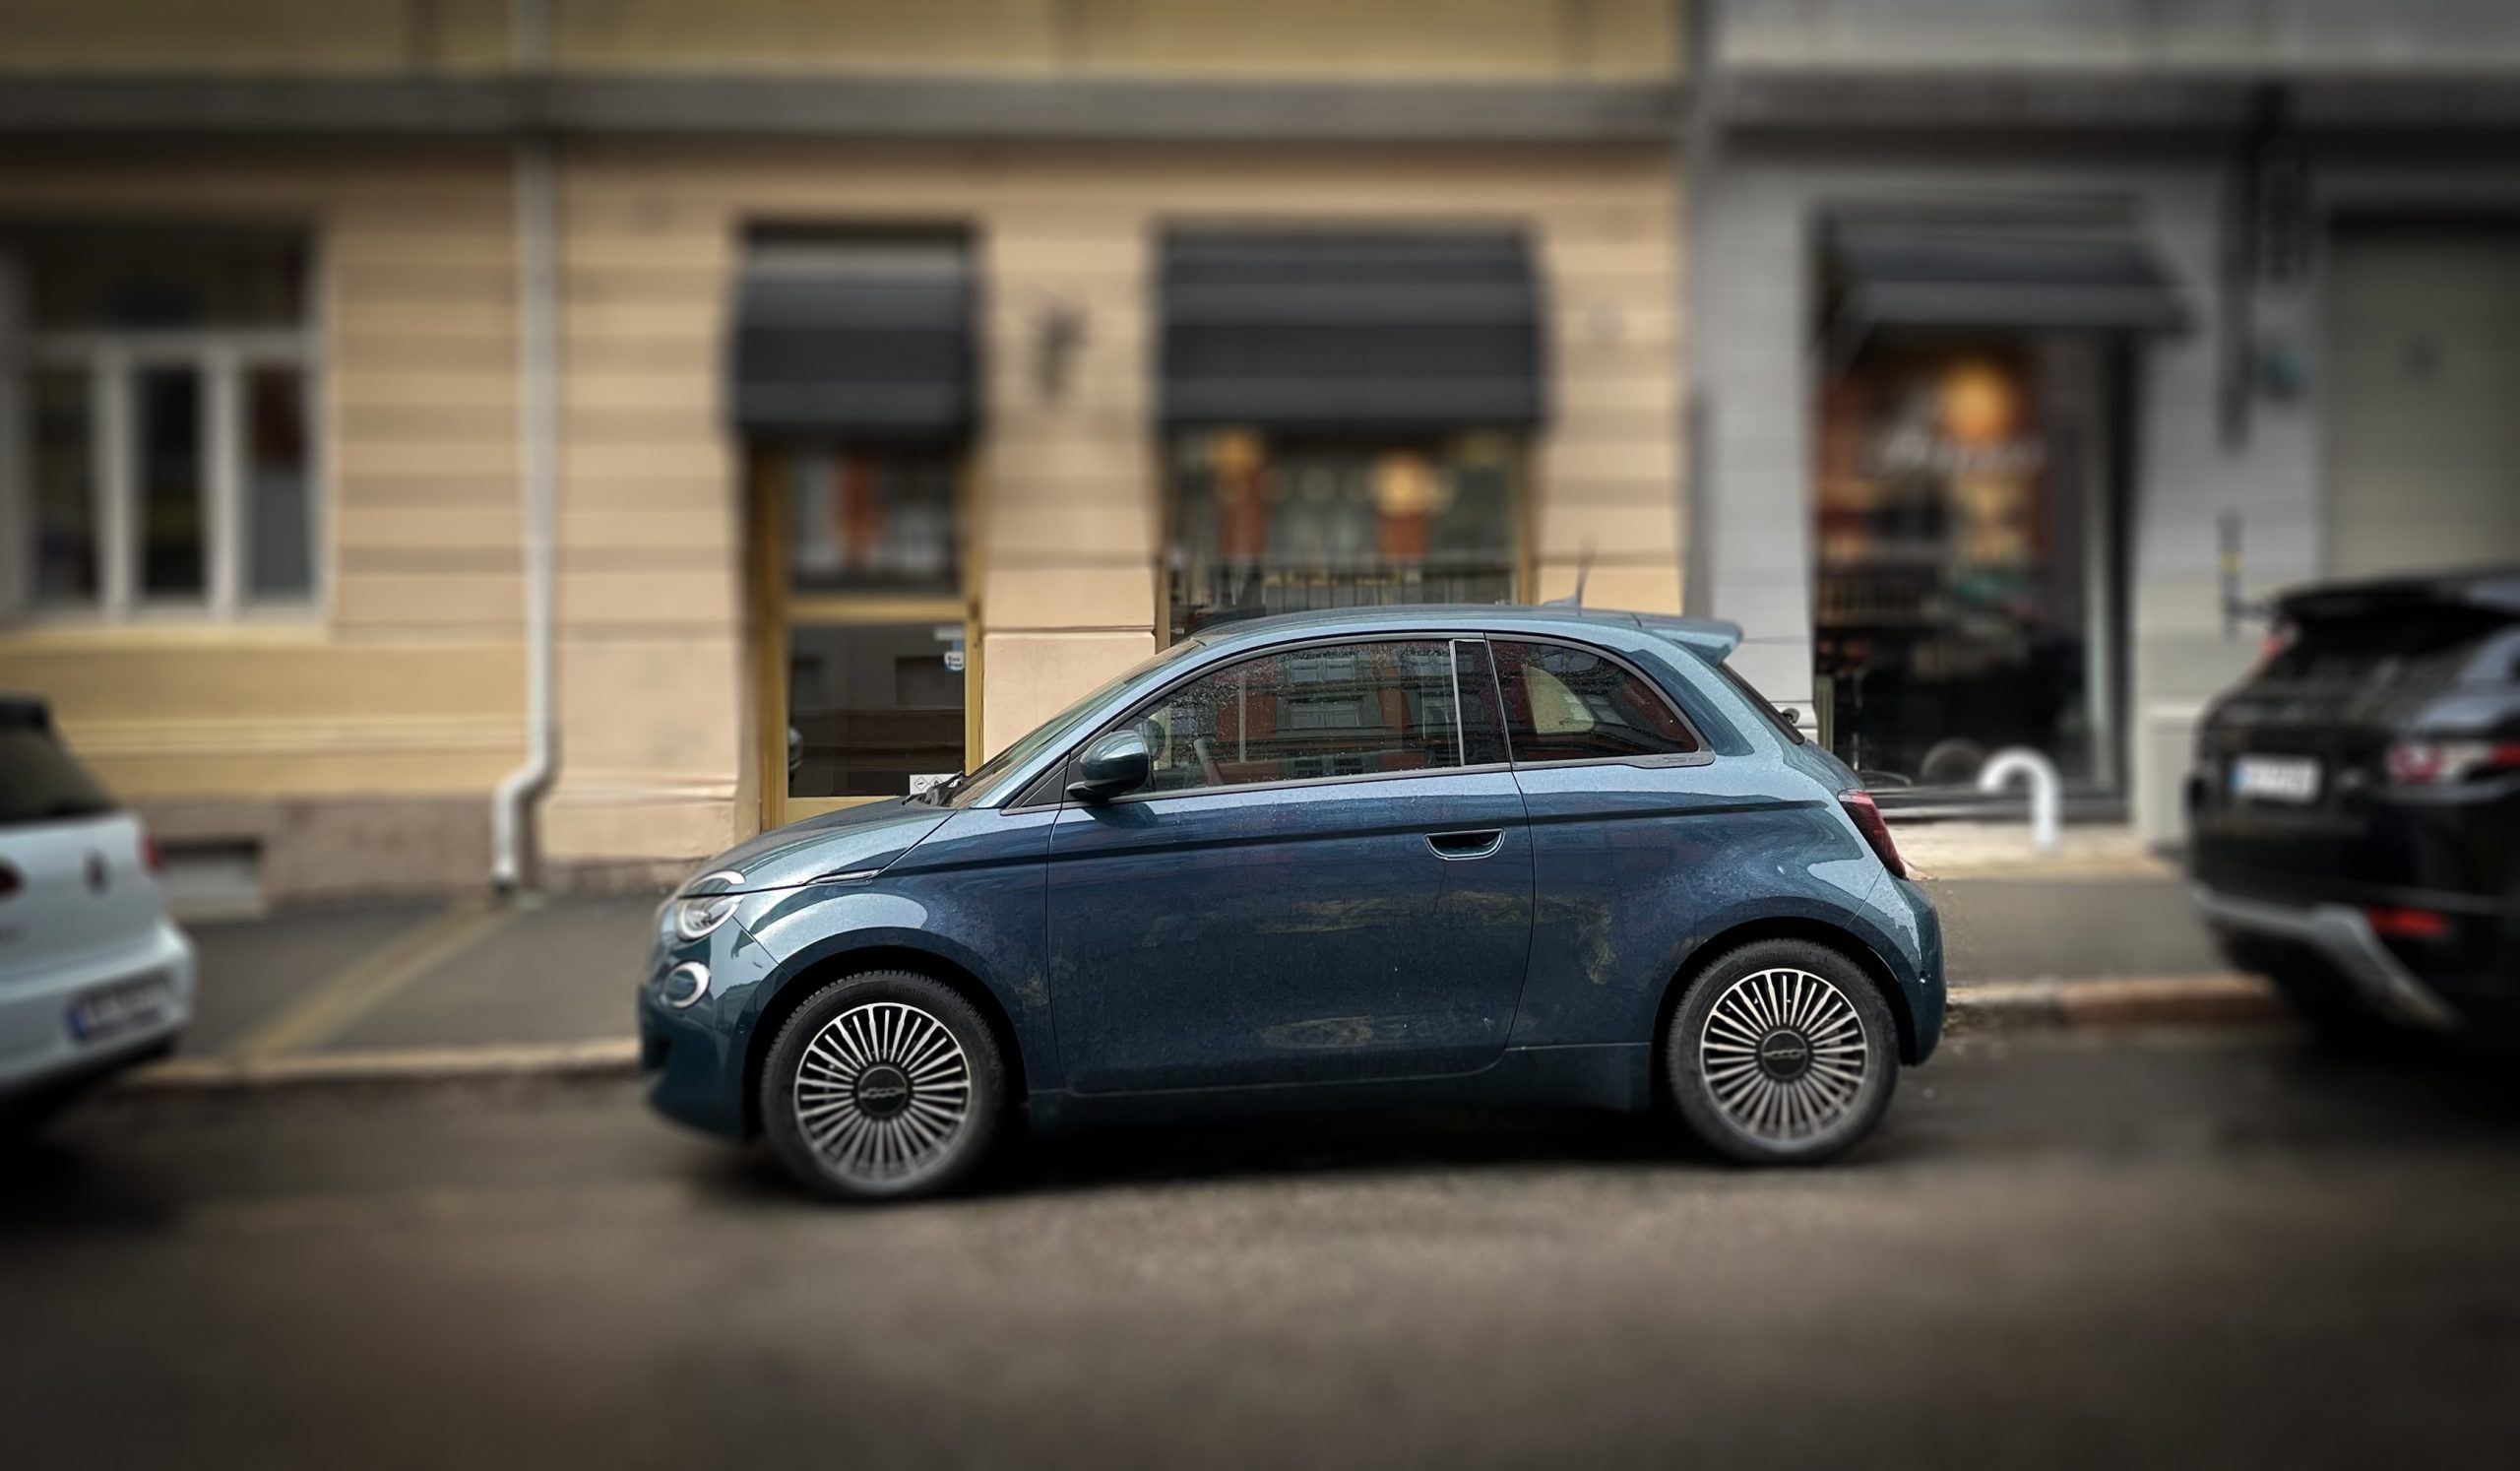 Fiat 500 Electric easy parking